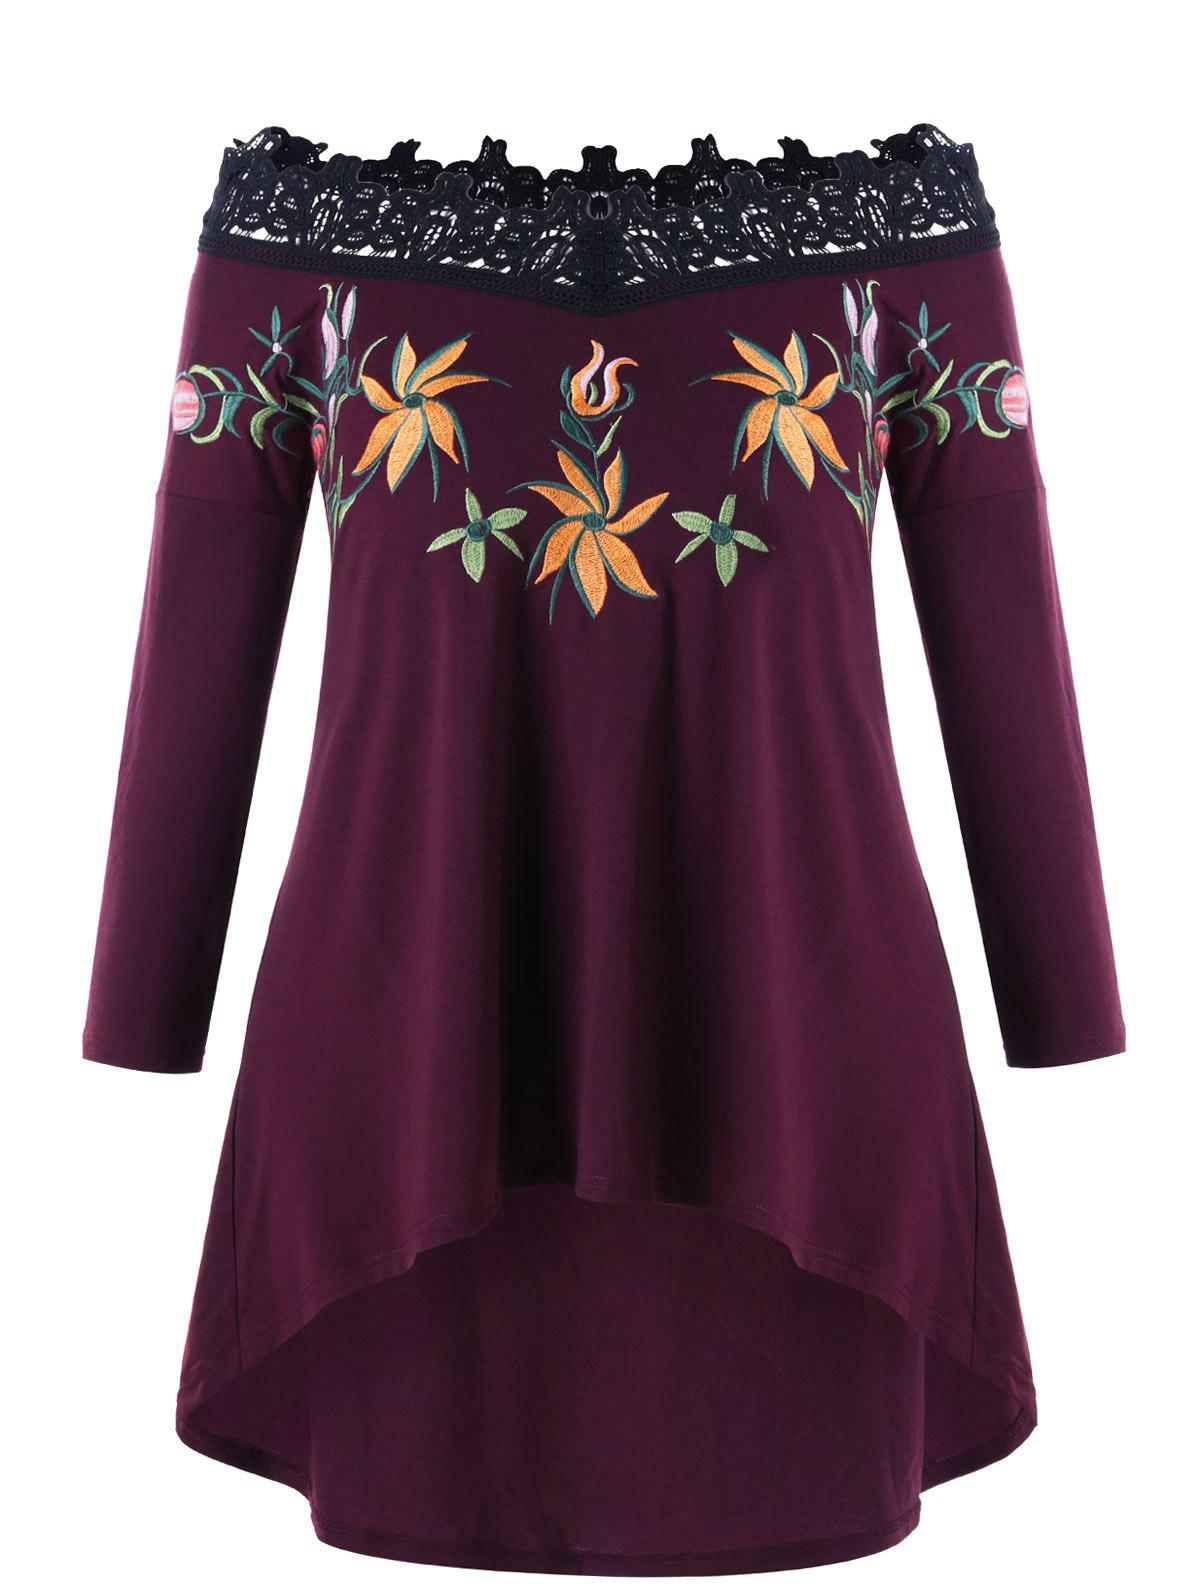 High Low Plus Size Embroidery Off Shoulder TopWOMEN<br><br>Size: 4XL; Color: COLORMIX; Material: Polyester; Shirt Length: Long; Sleeve Length: Full; Collar: Off The Shoulder; Style: Fashion; Season: Fall,Spring; Embellishment: Embroidery; Pattern Type: Others; Weight: 0.3550kg; Package Contents: 1 x Top;